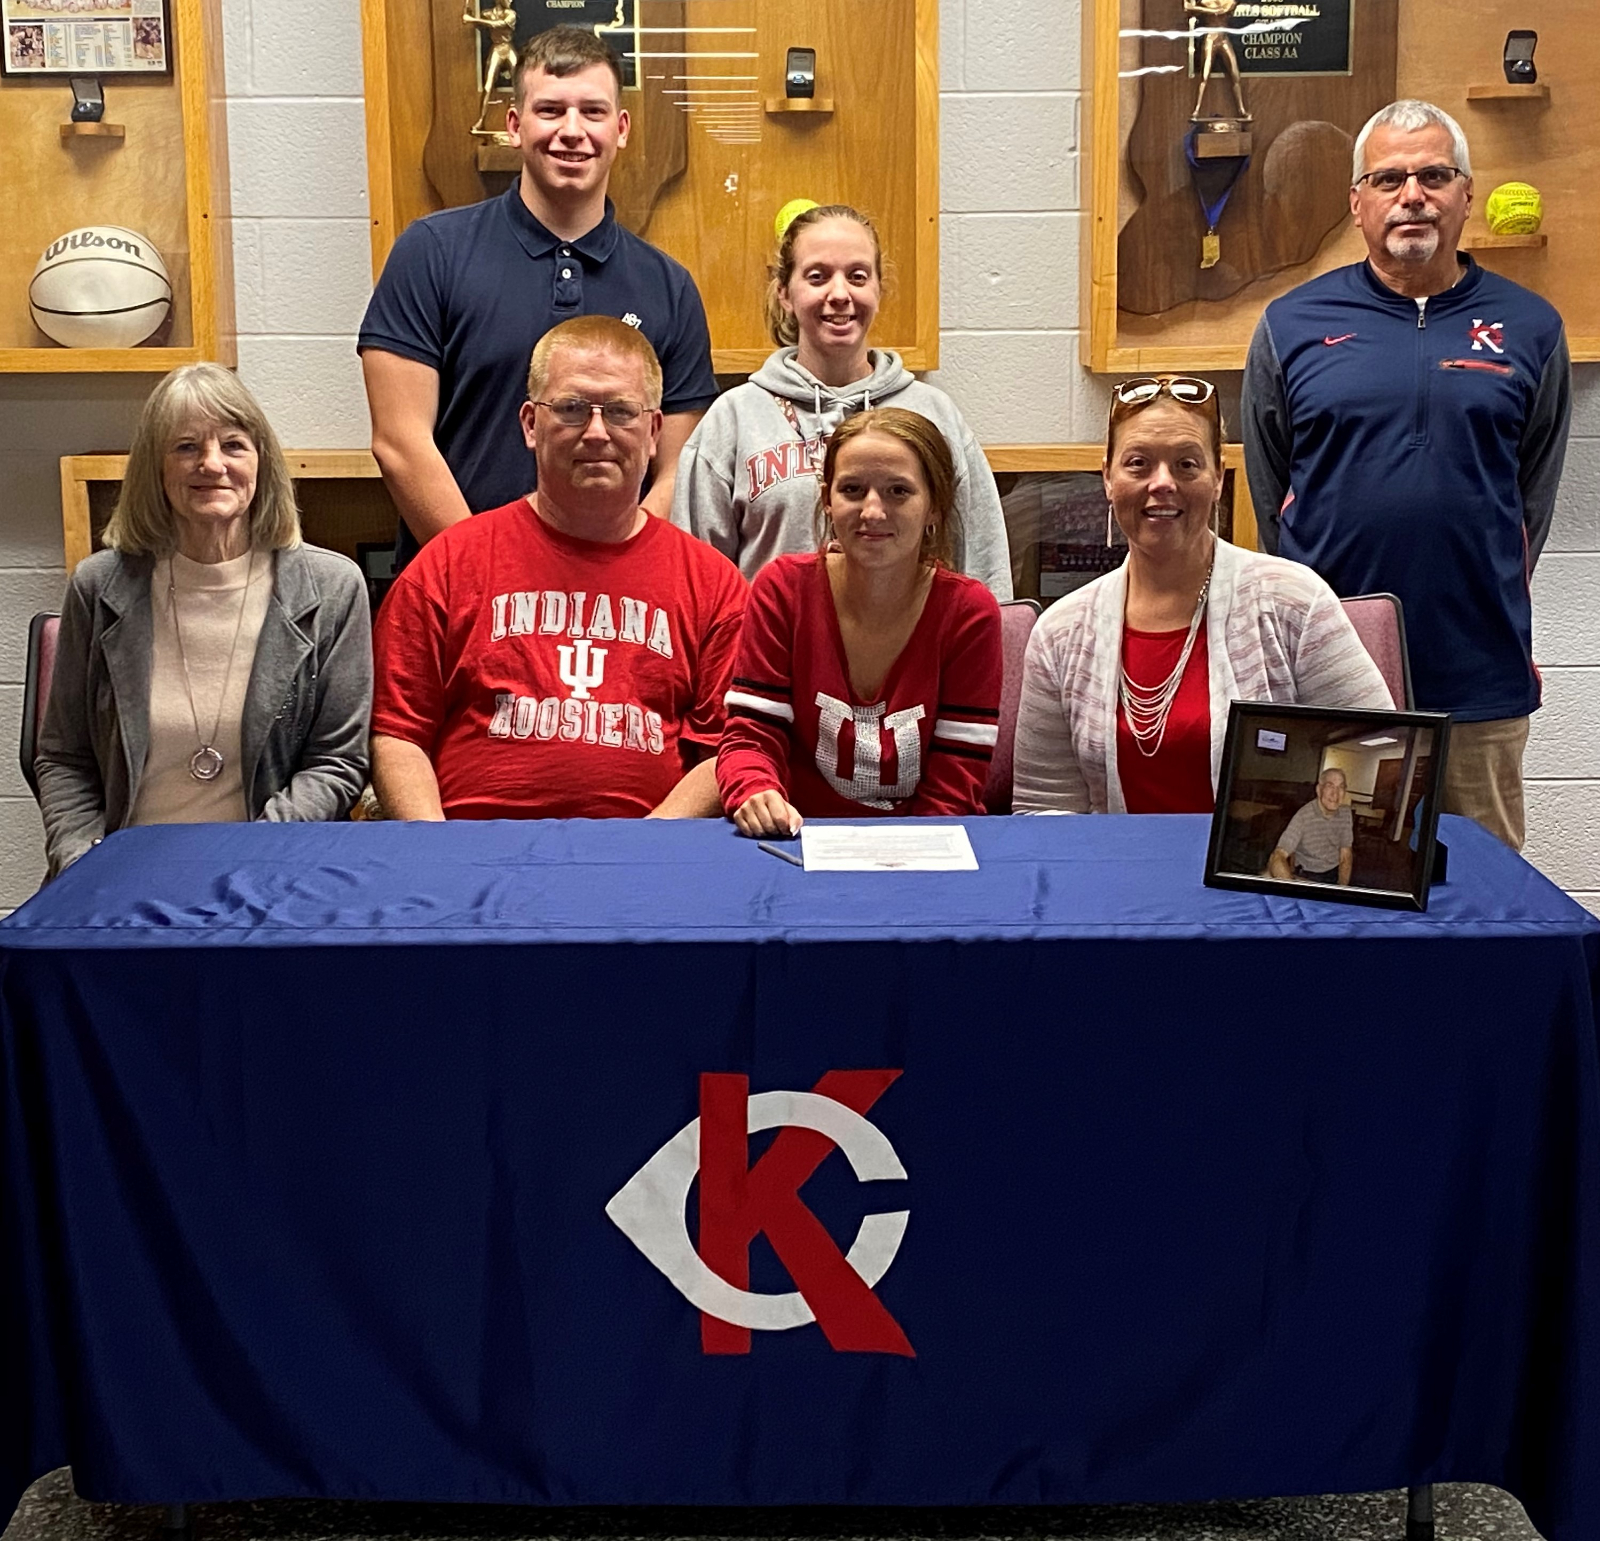 Andrea Hair signs with IUK for Golf!